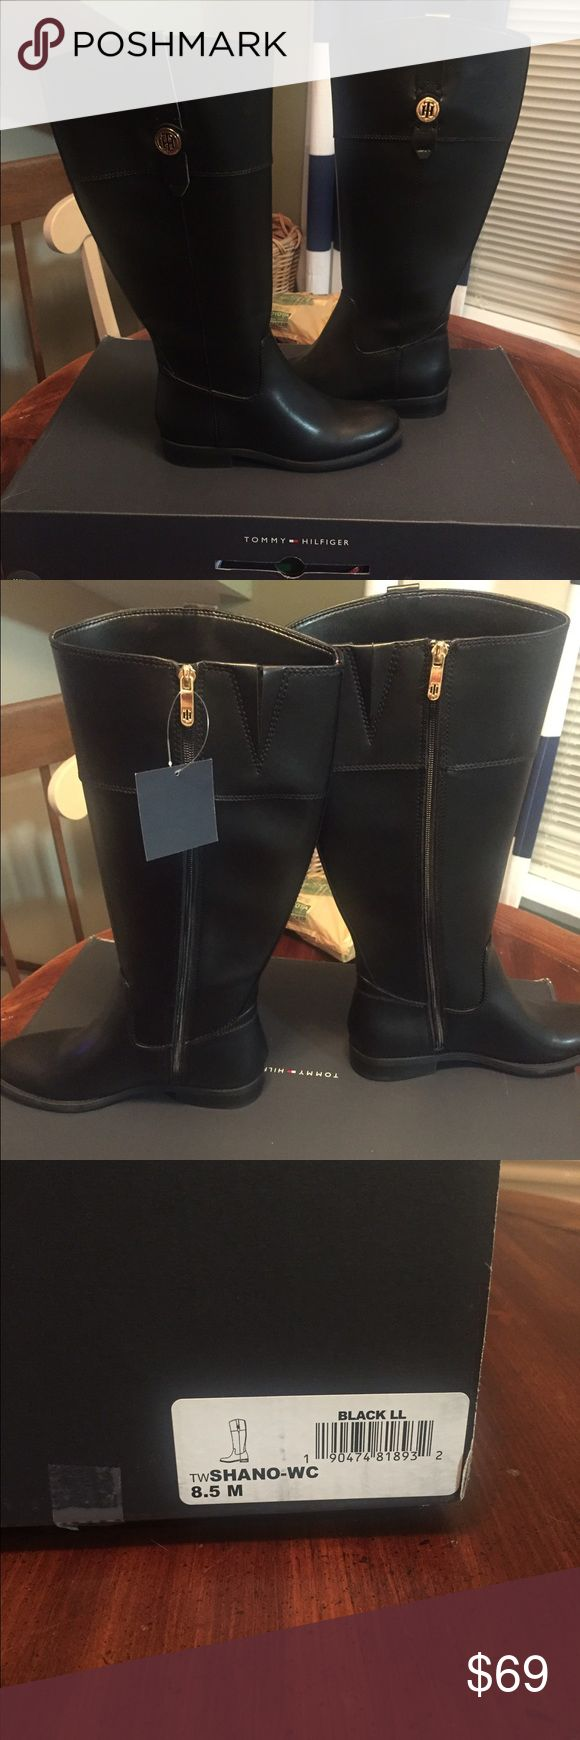 Tommy Hilfiger wide calf boots Tommy Hilfiger Shane wide-calf boots. Newer worn, new in box. Black with gold emblem on outside. Tommy Hilfiger Shoes